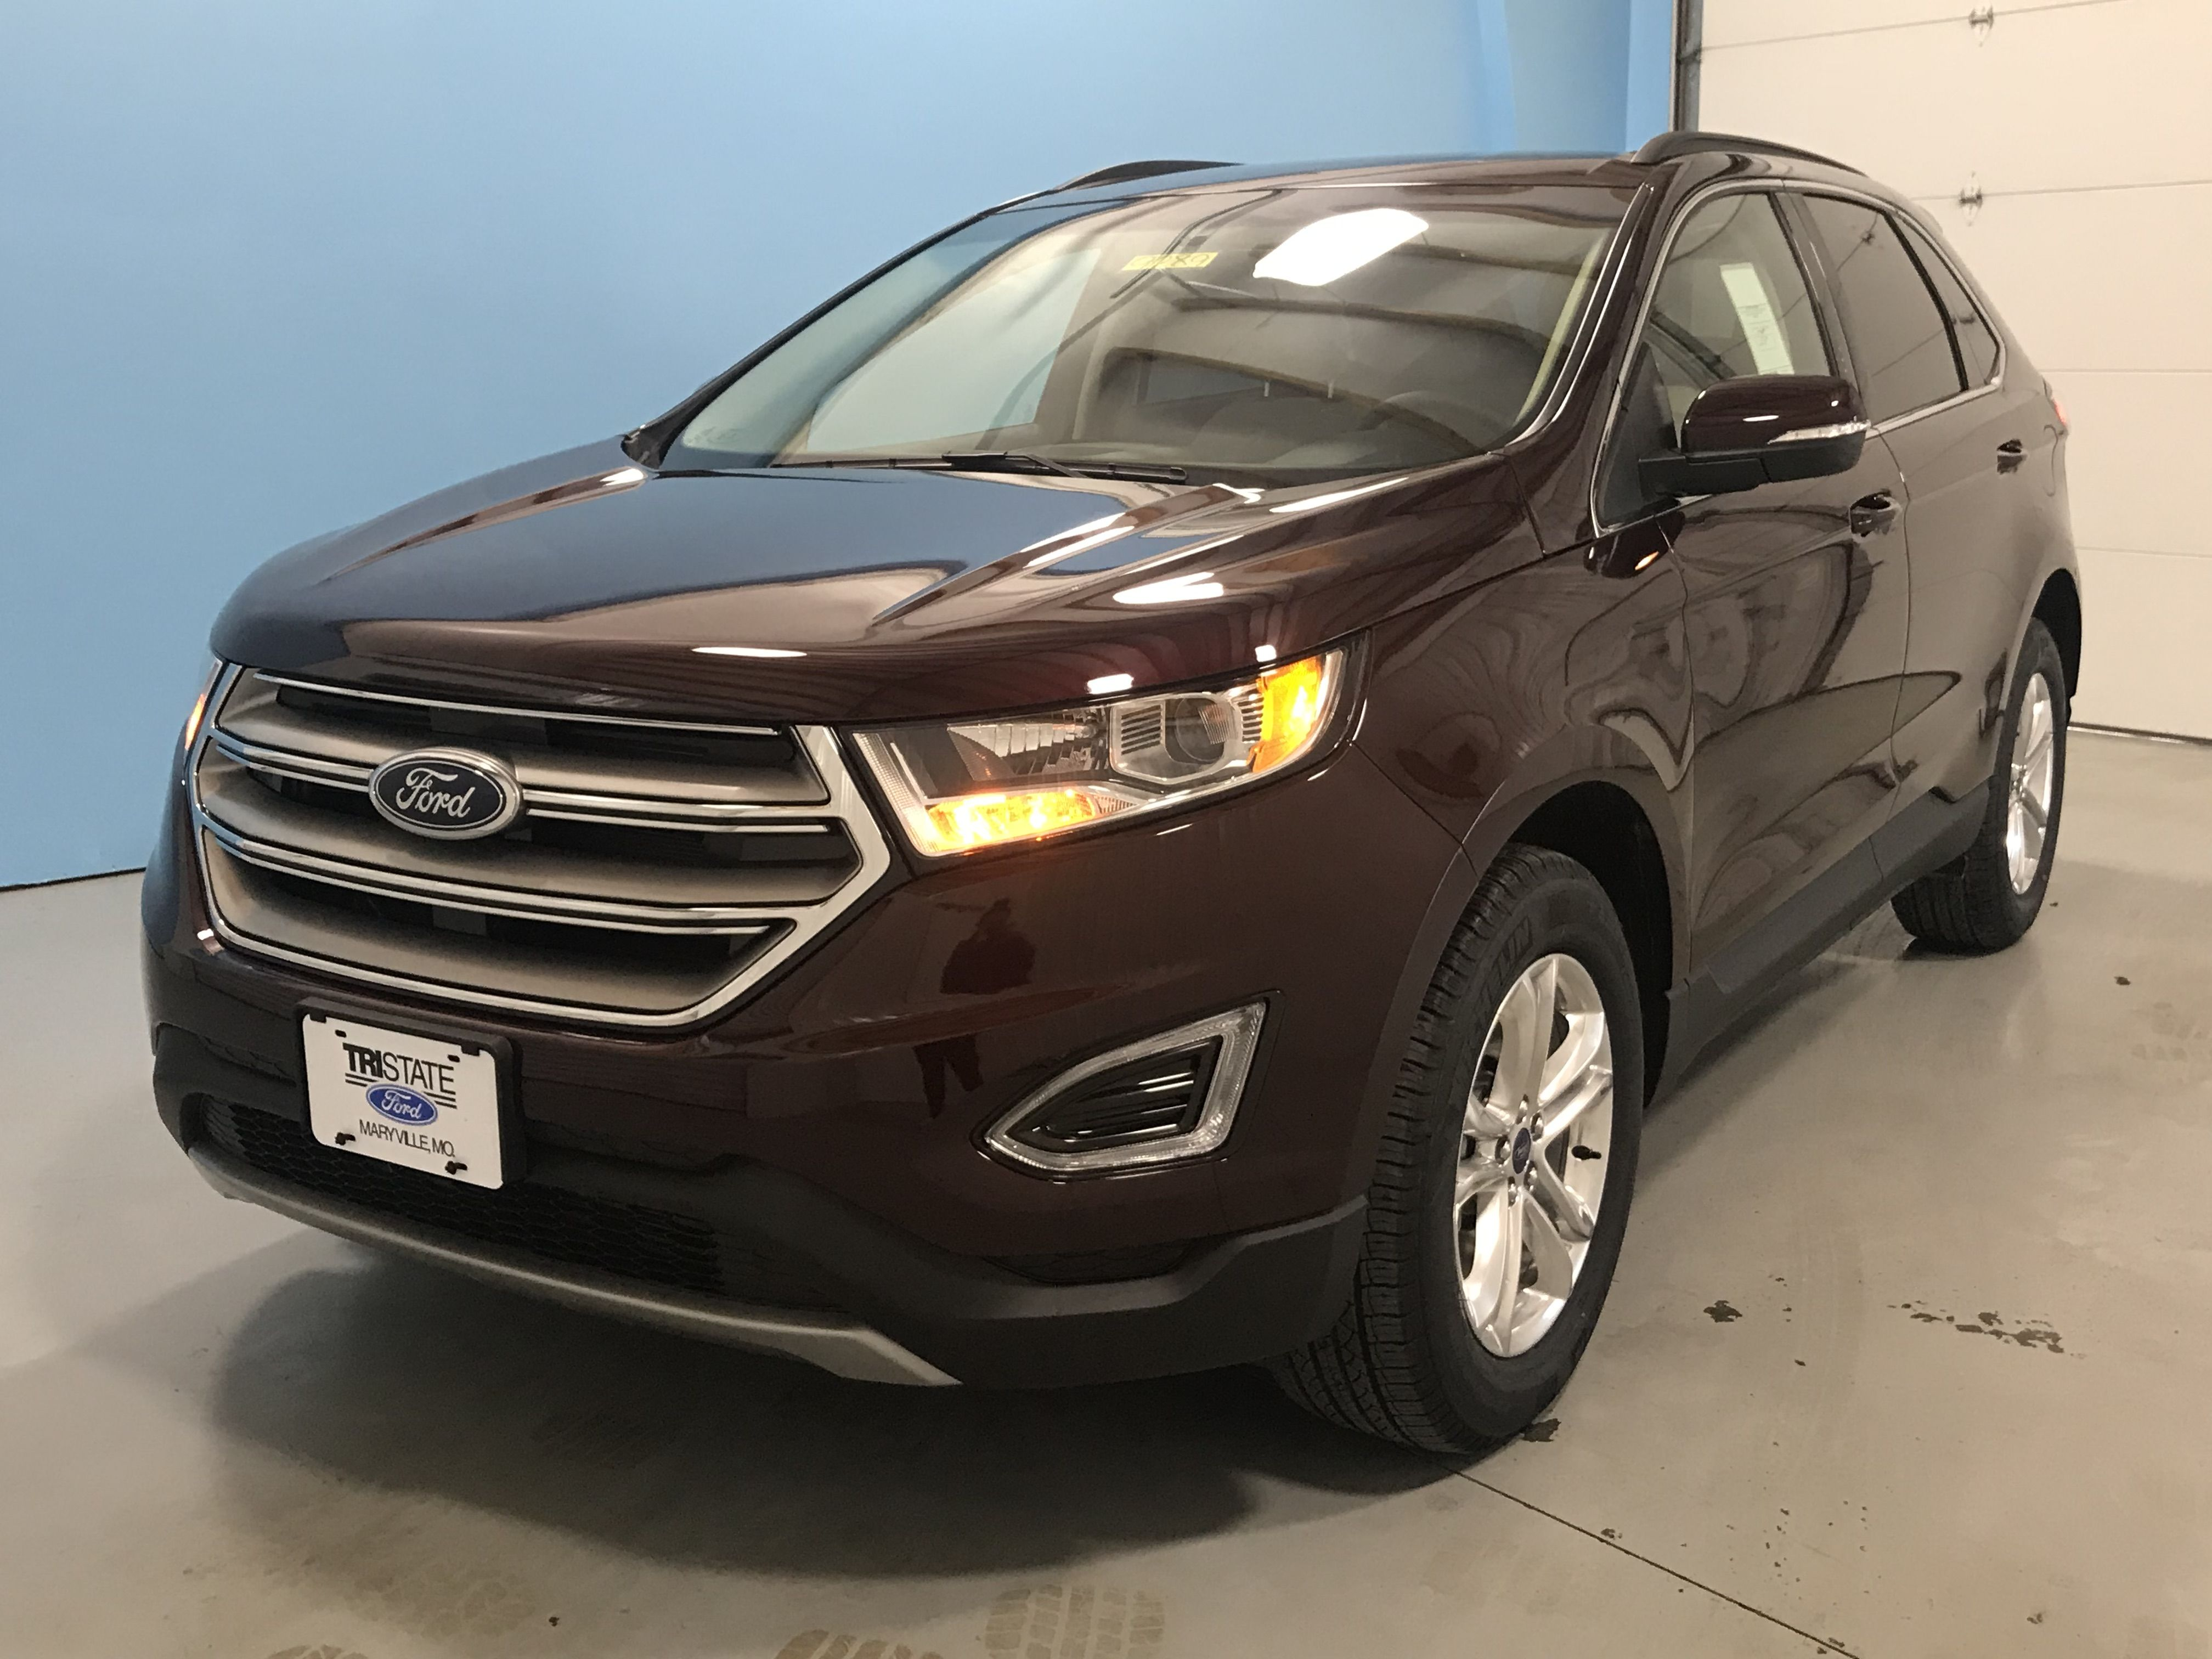 Ford Edge Sel Crossover Twin Scroll Ecoboost Leather Interior Backup Camera